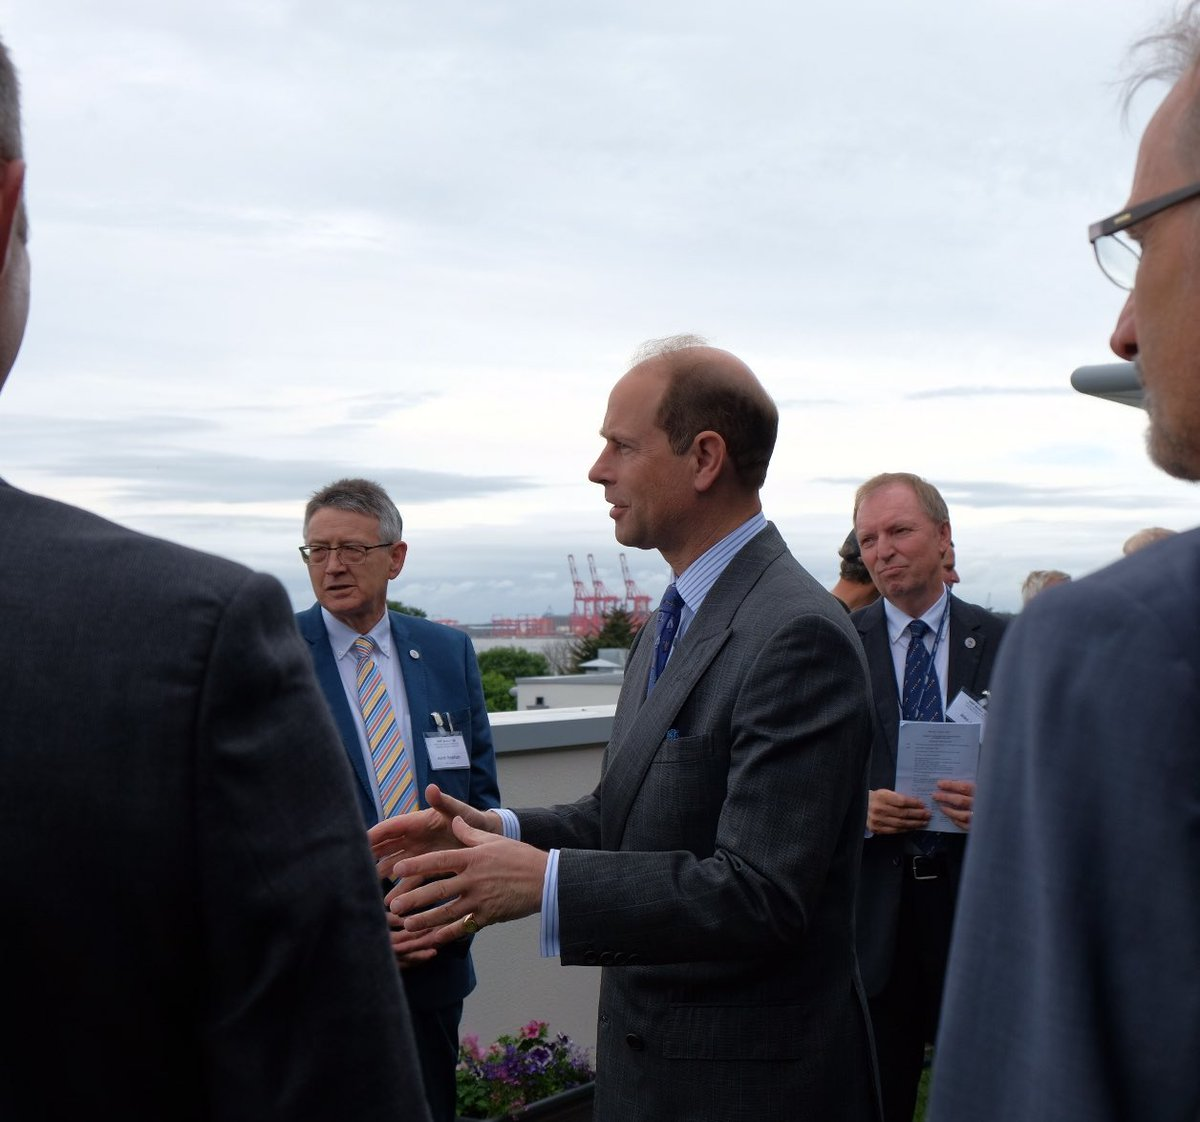 HRH opened the new @Seafarers_UK centenary wing accommodation hub and...